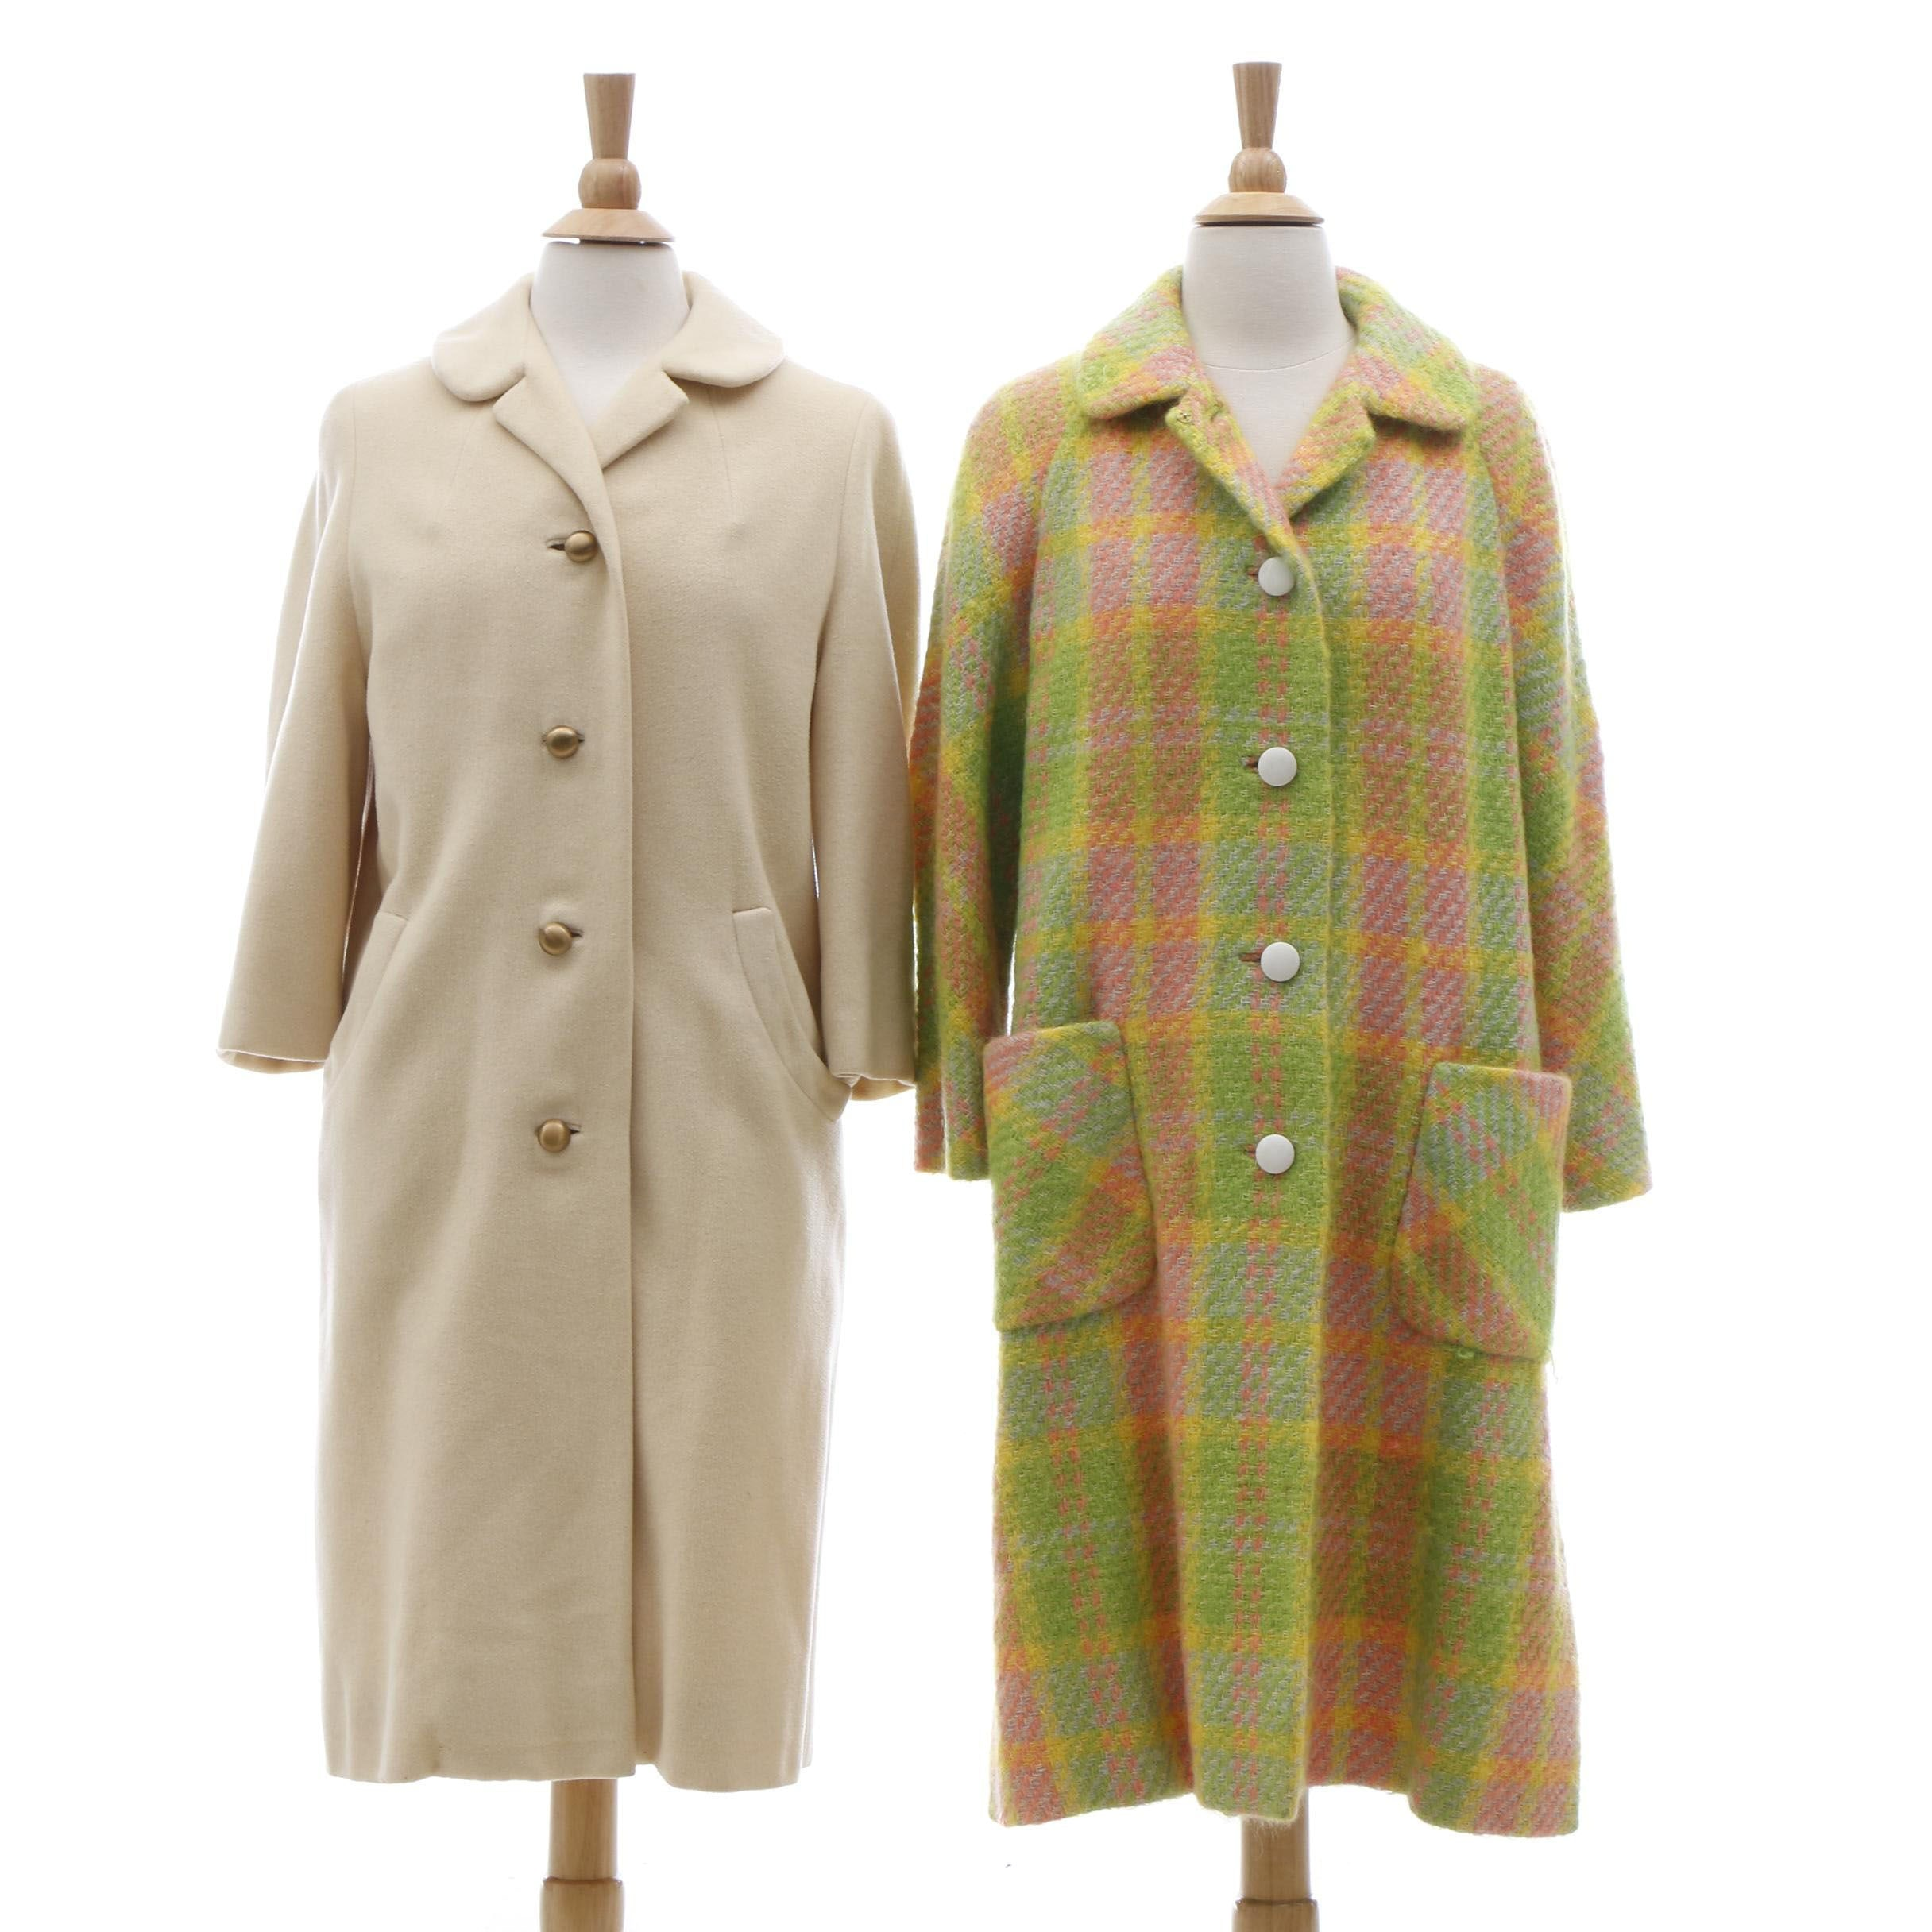 Michaelson Cashmere Blend and Pietro Neiman Marcus Tweed Coats, Vintage